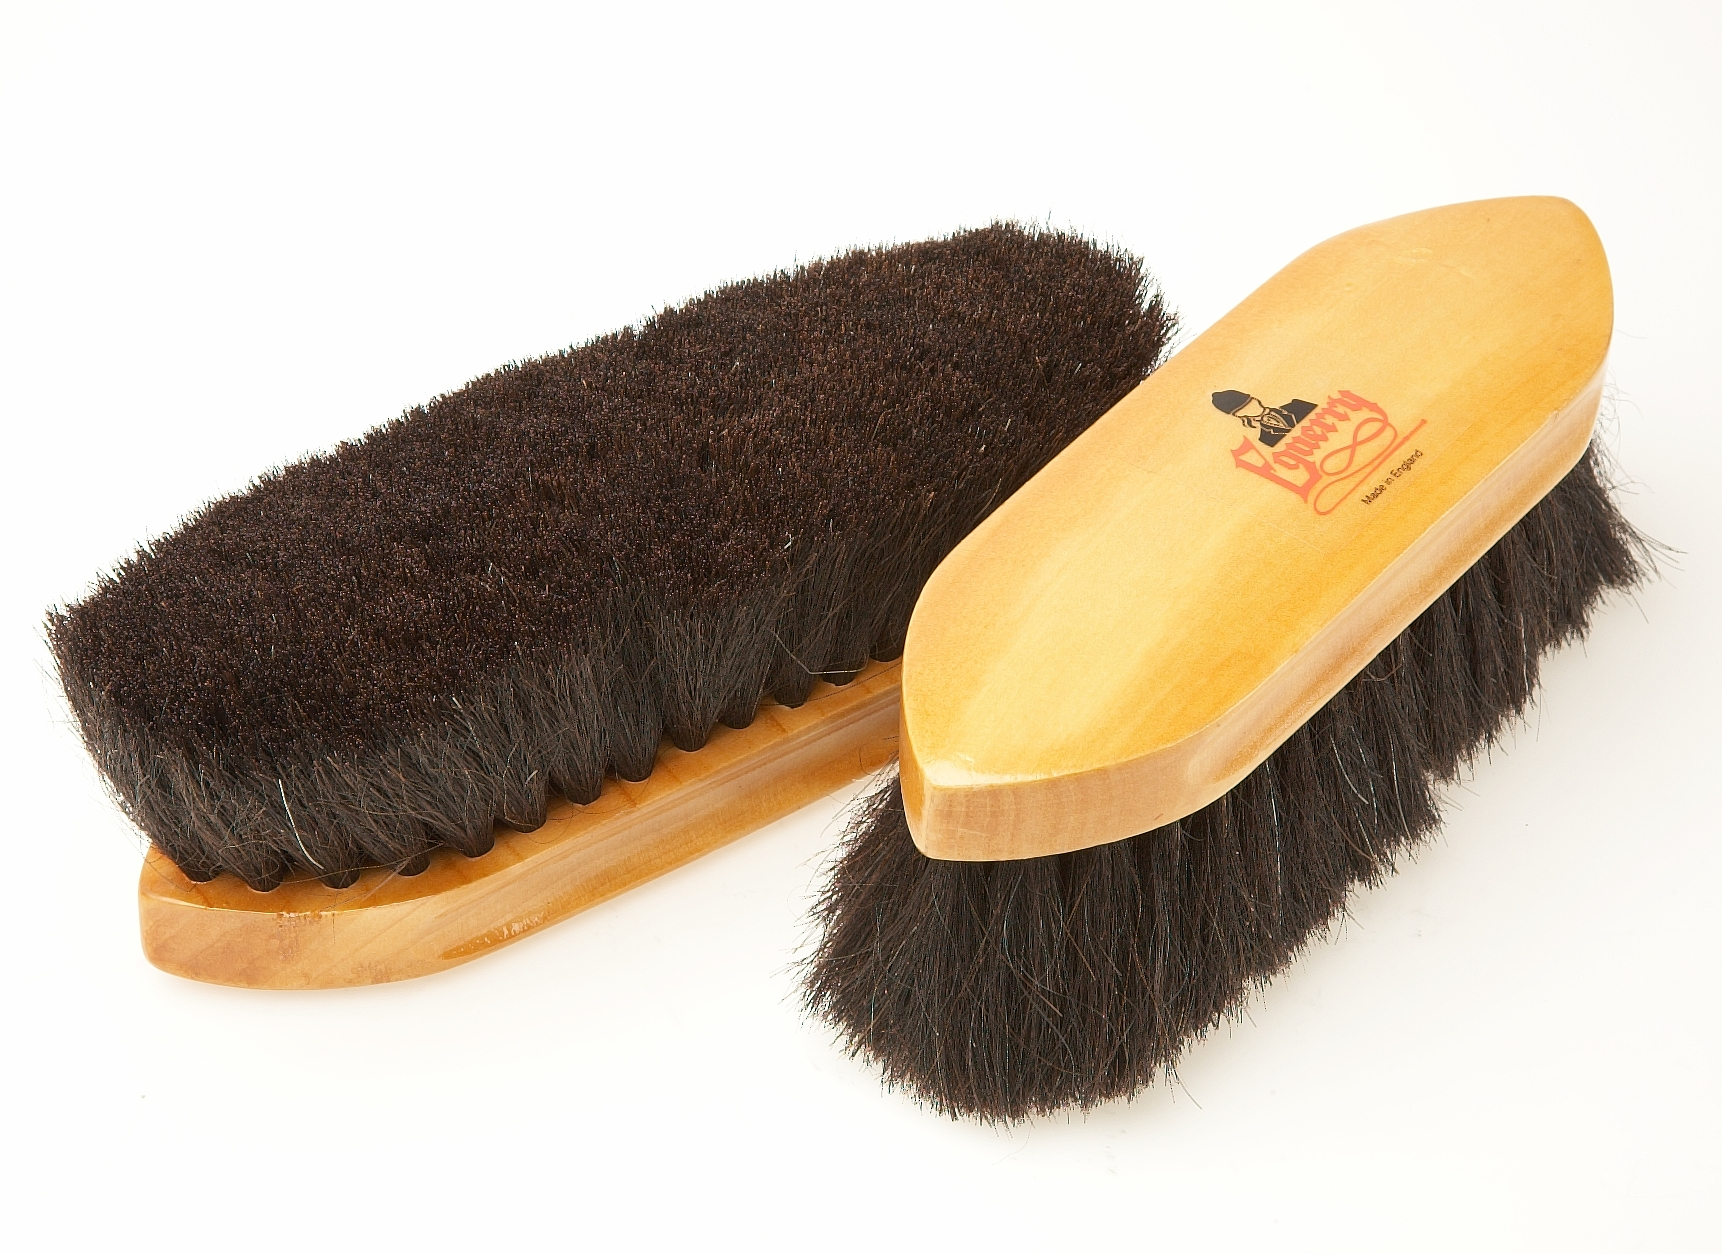 Vale Brothers Equerry Wooden Dandy Horse Hair Brush